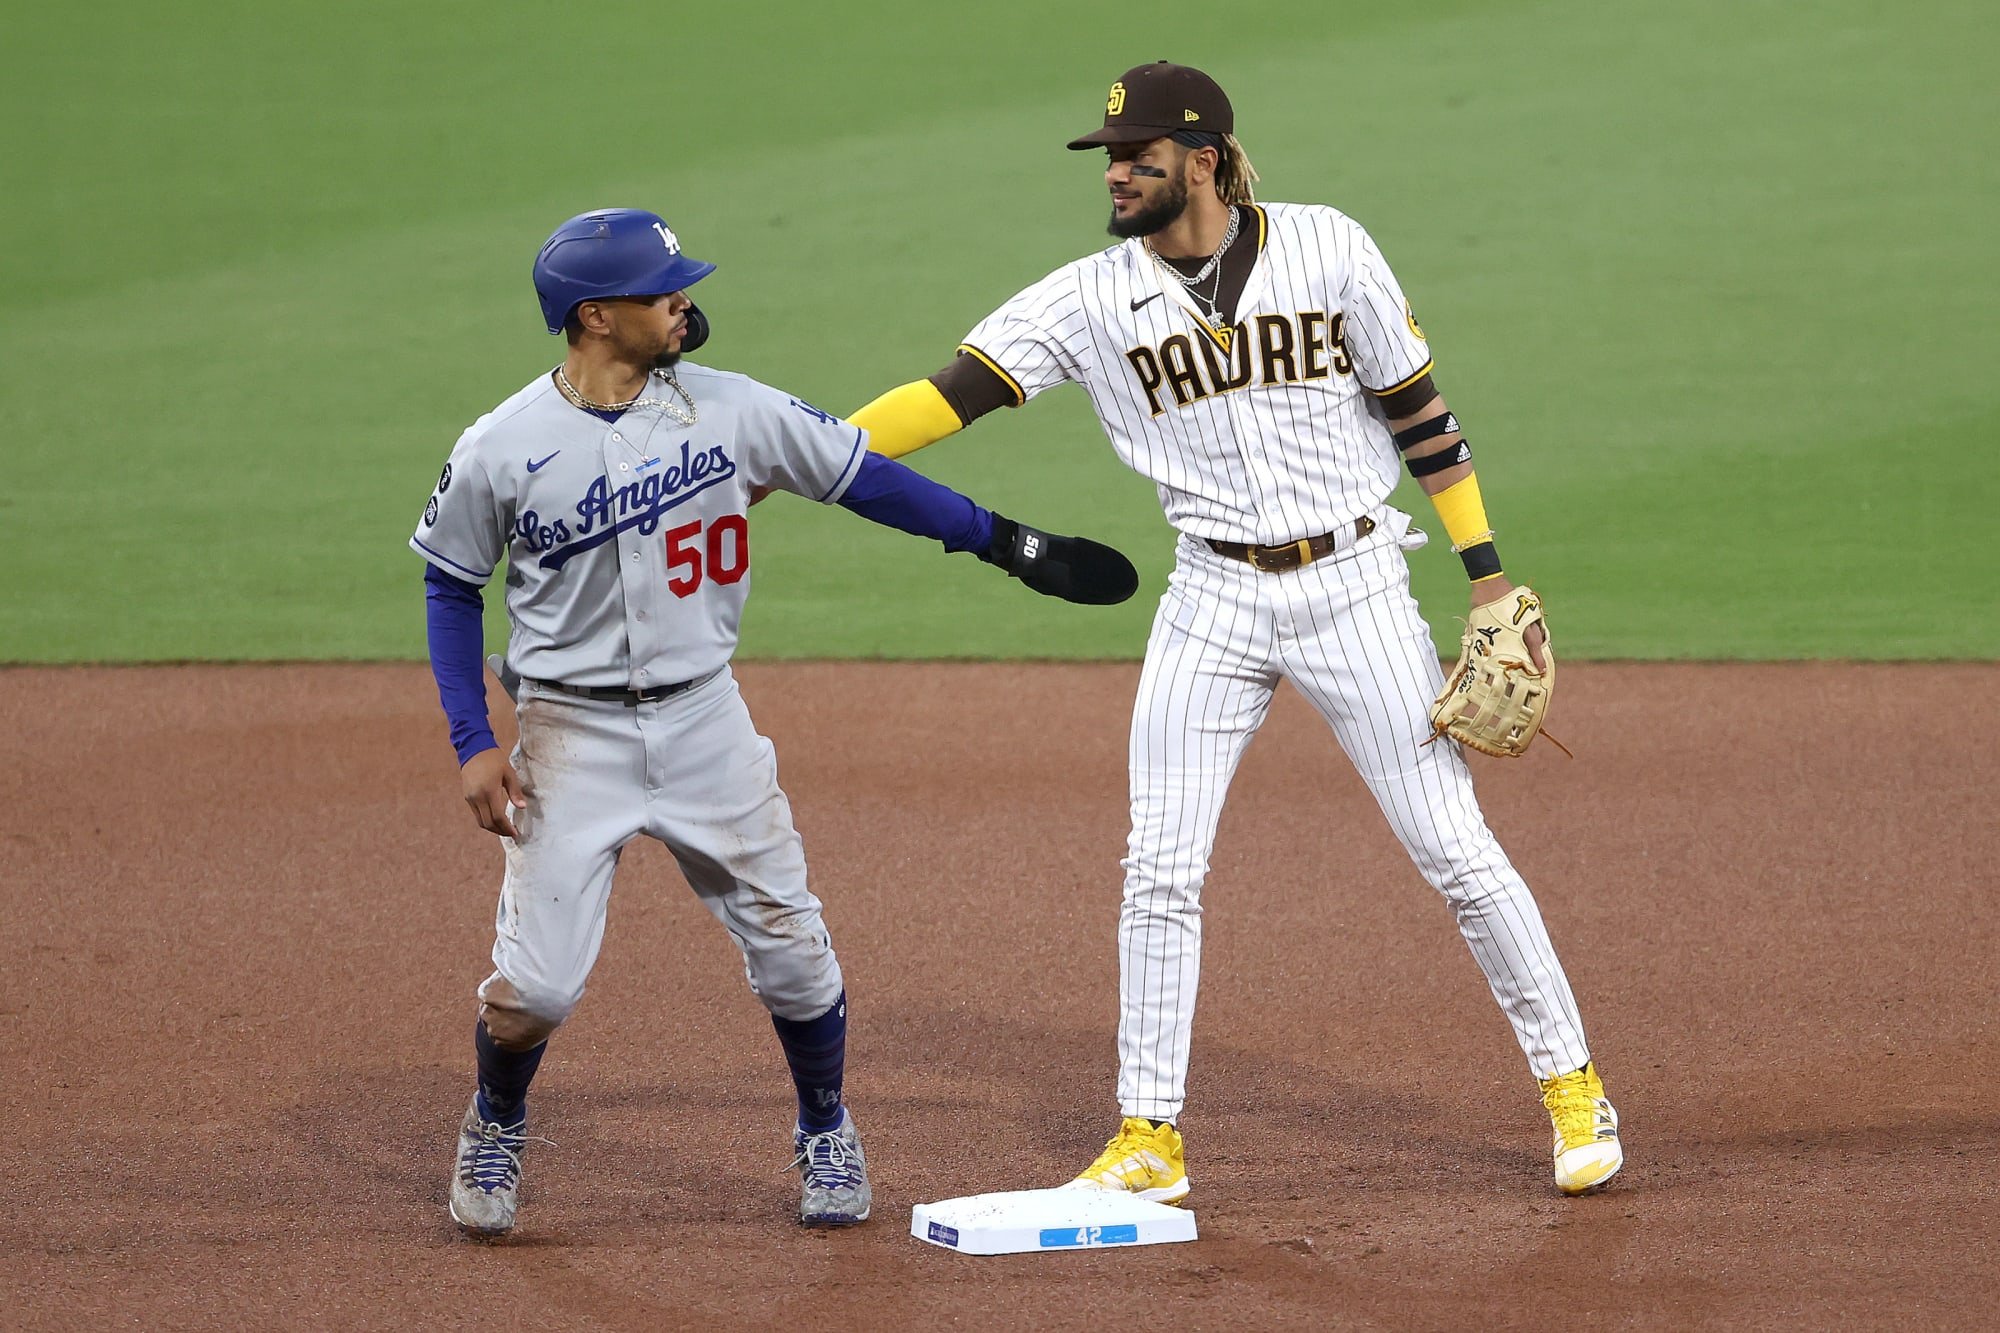 Inside the Clubhouse: Dodgers and Padres is now MLB's premier rivalry